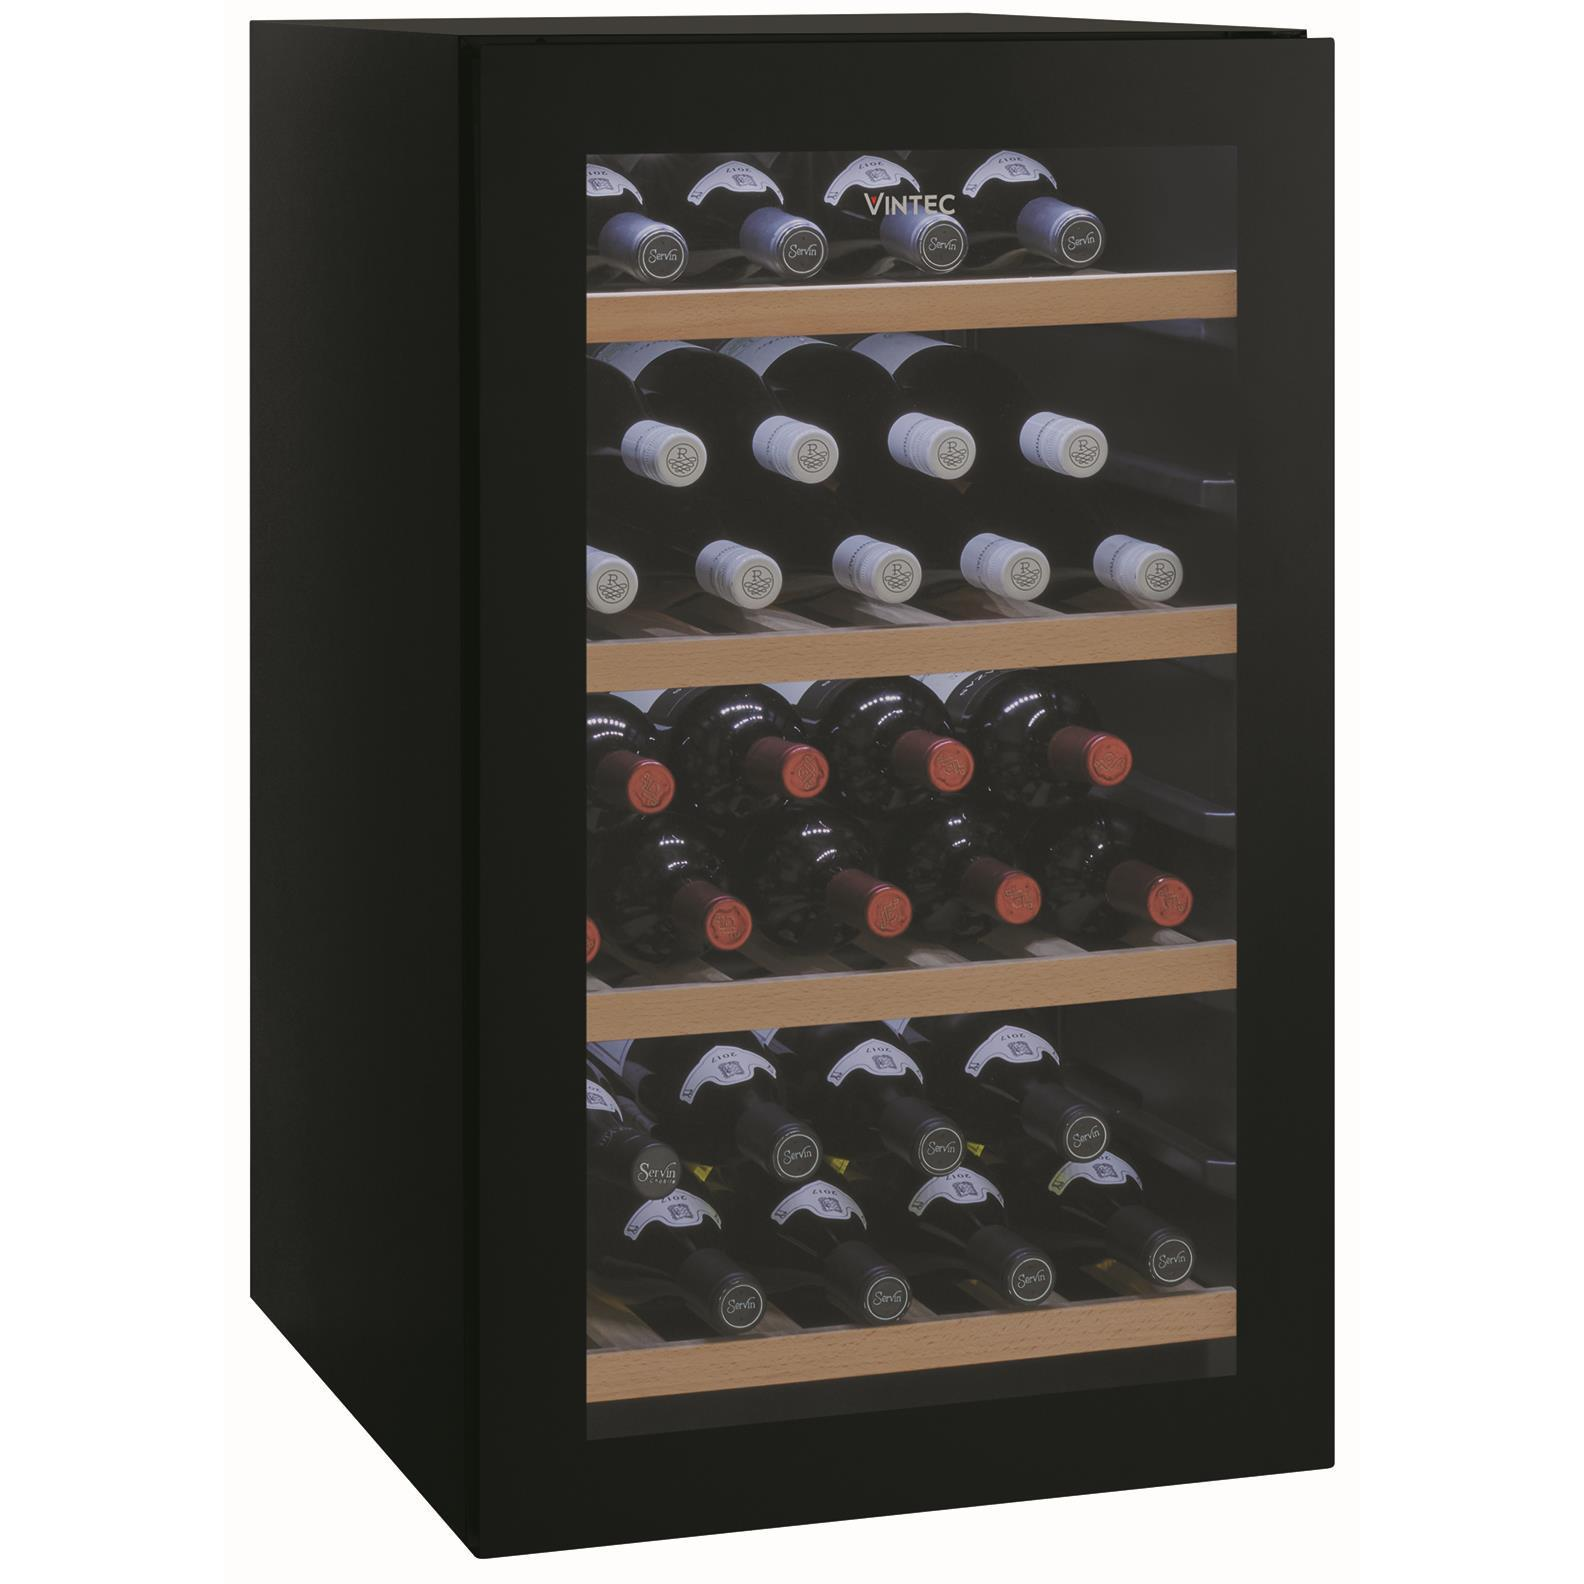 Vintec VWS035SBAX 35 Bottle Wine Cabinet